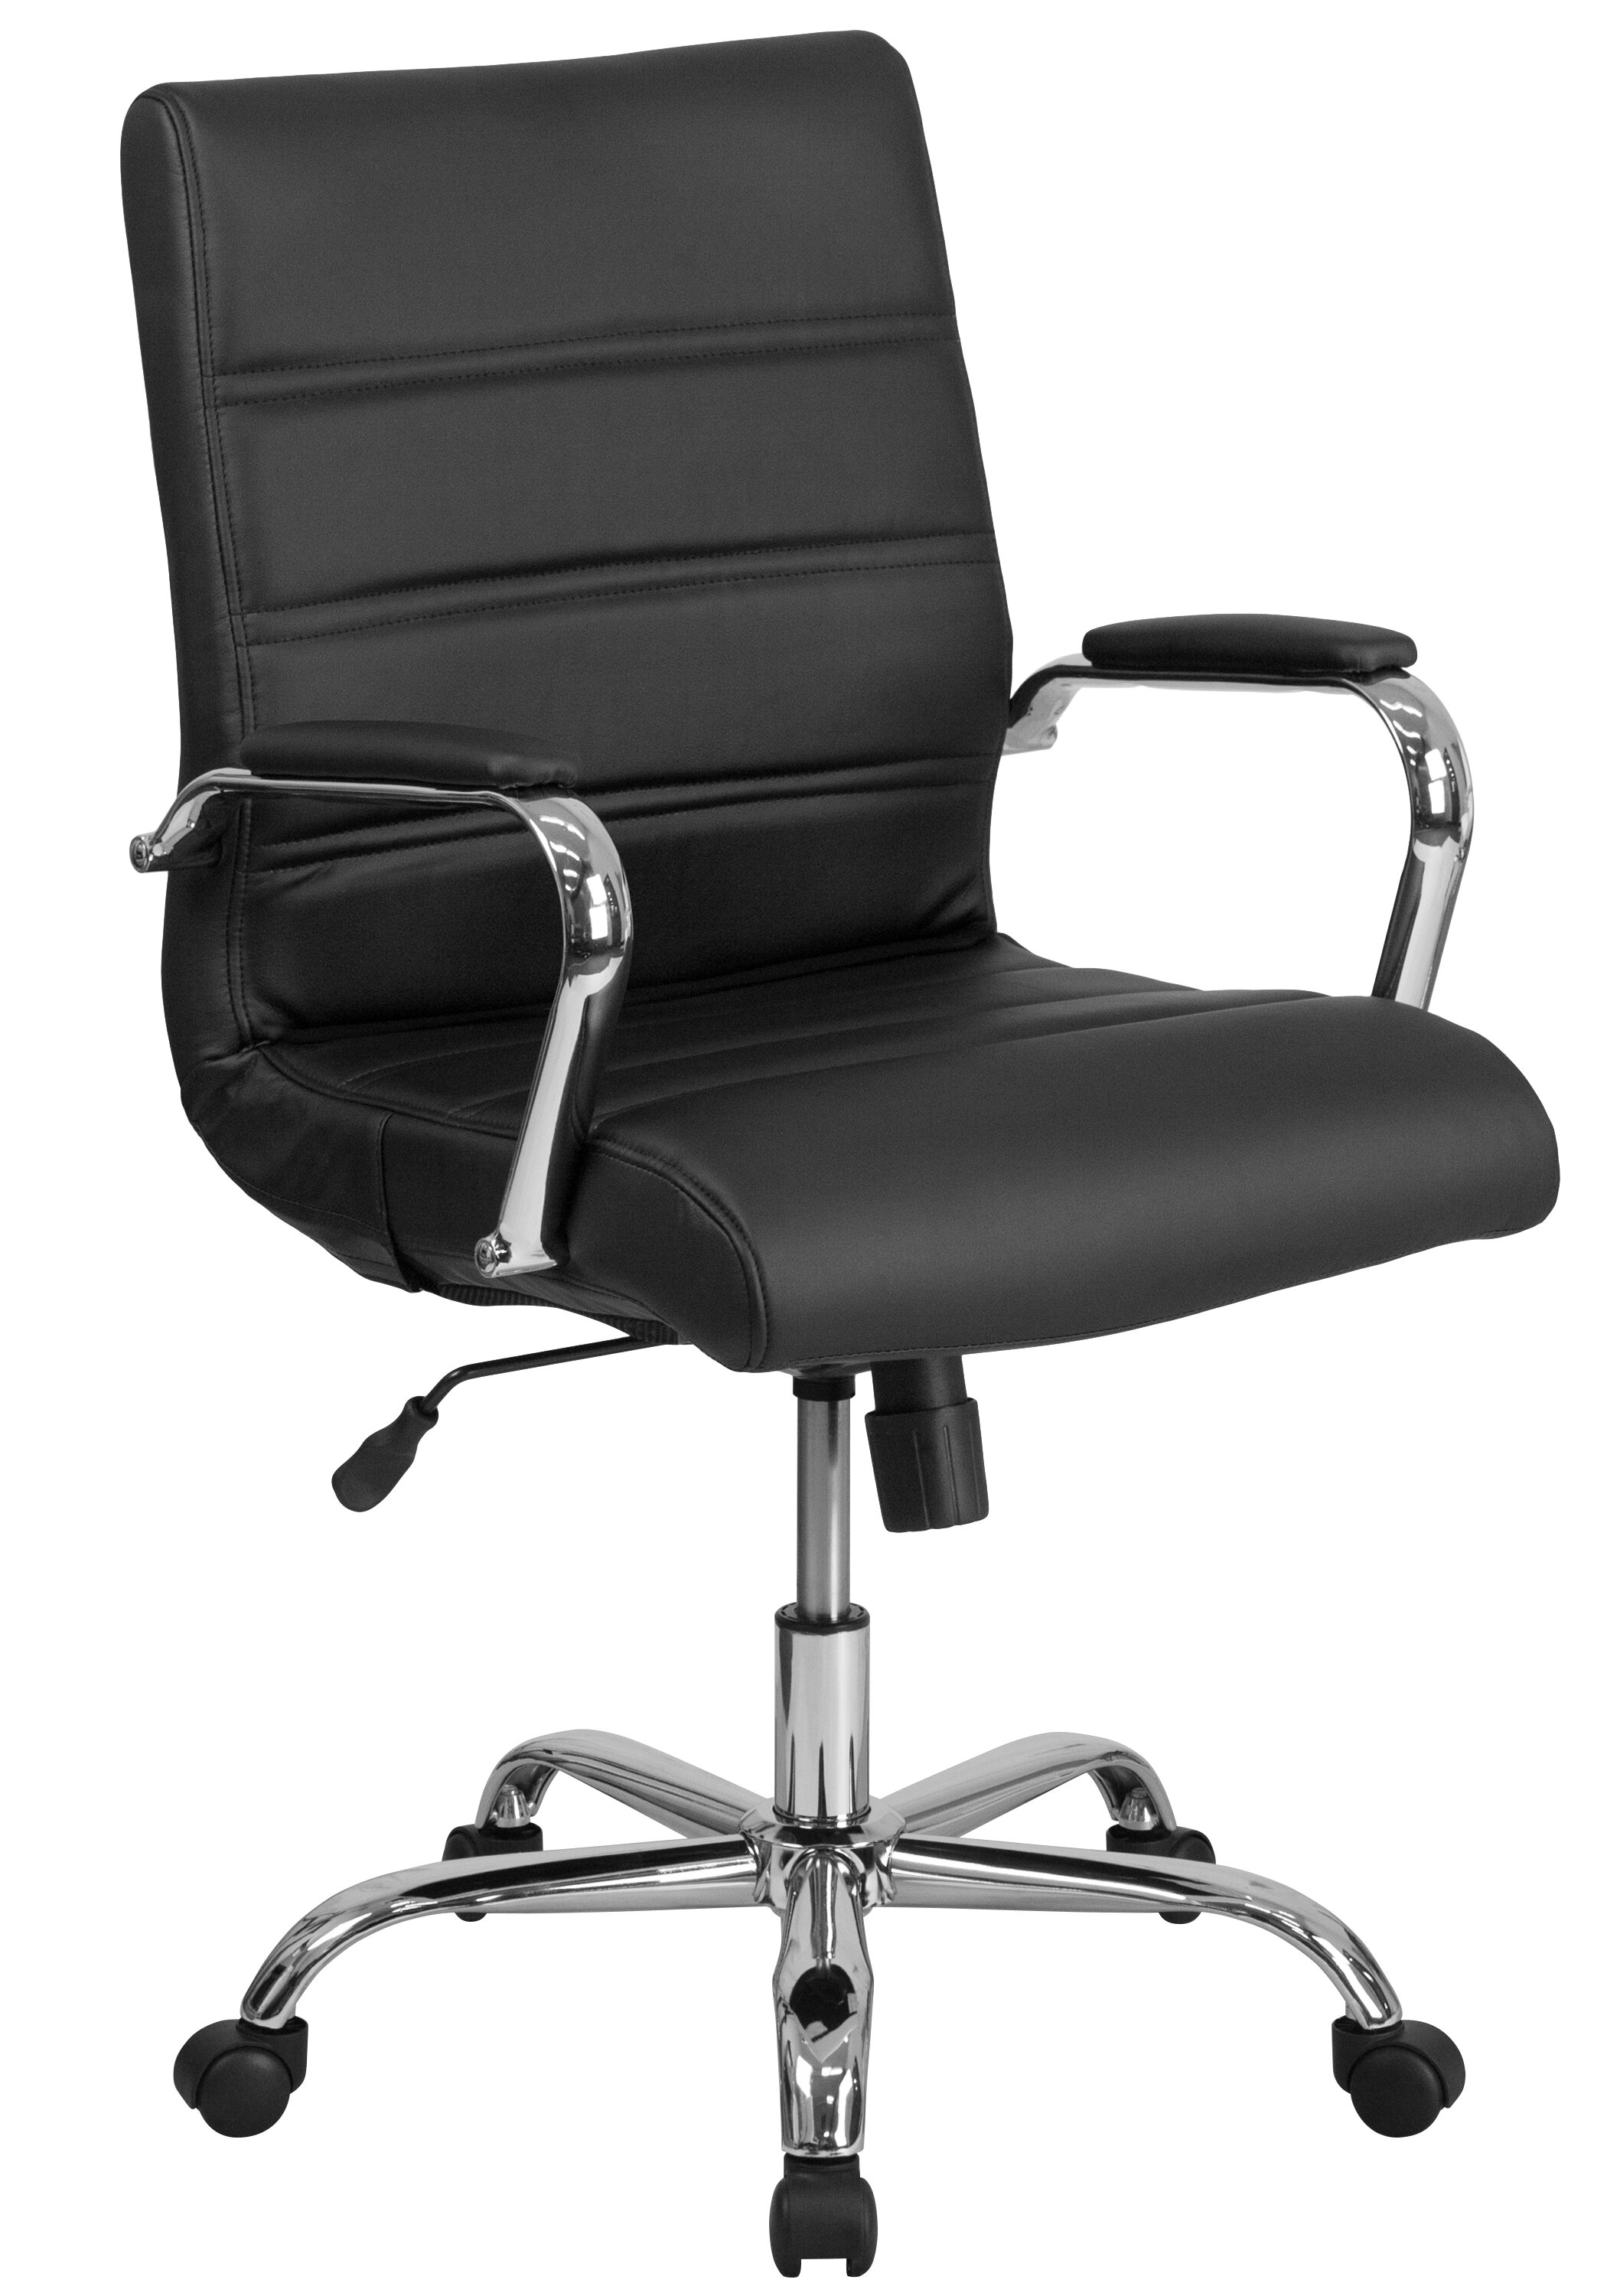 adjustable arms swivel leather armless contemporary chair chrome design executive of white fice attachment office with